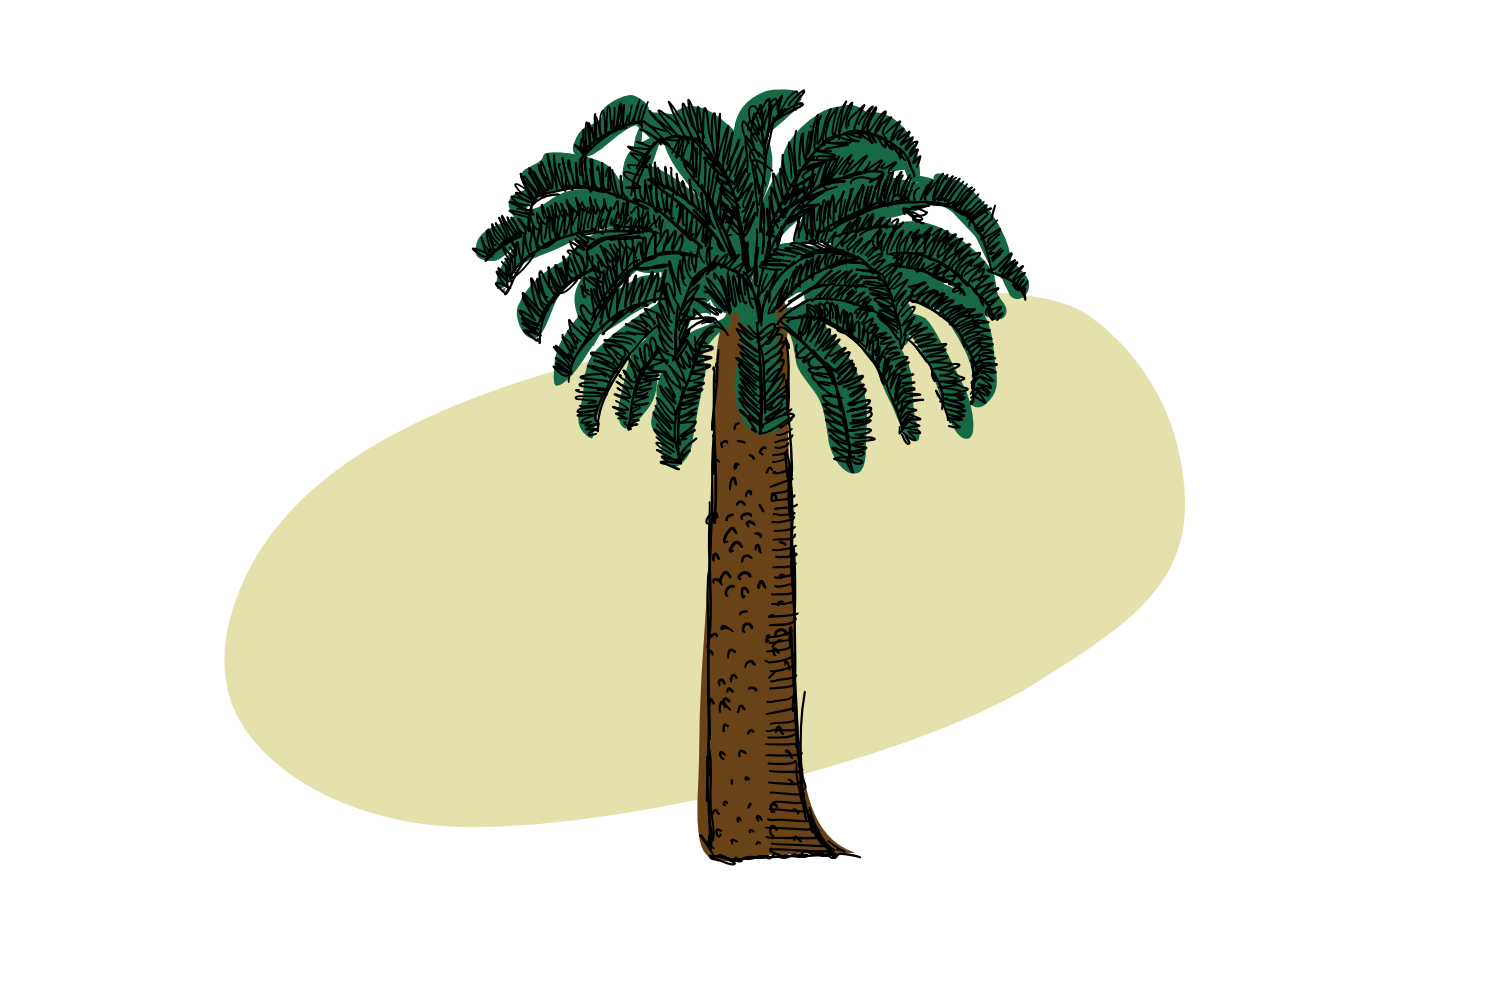 The Isolated Cycad